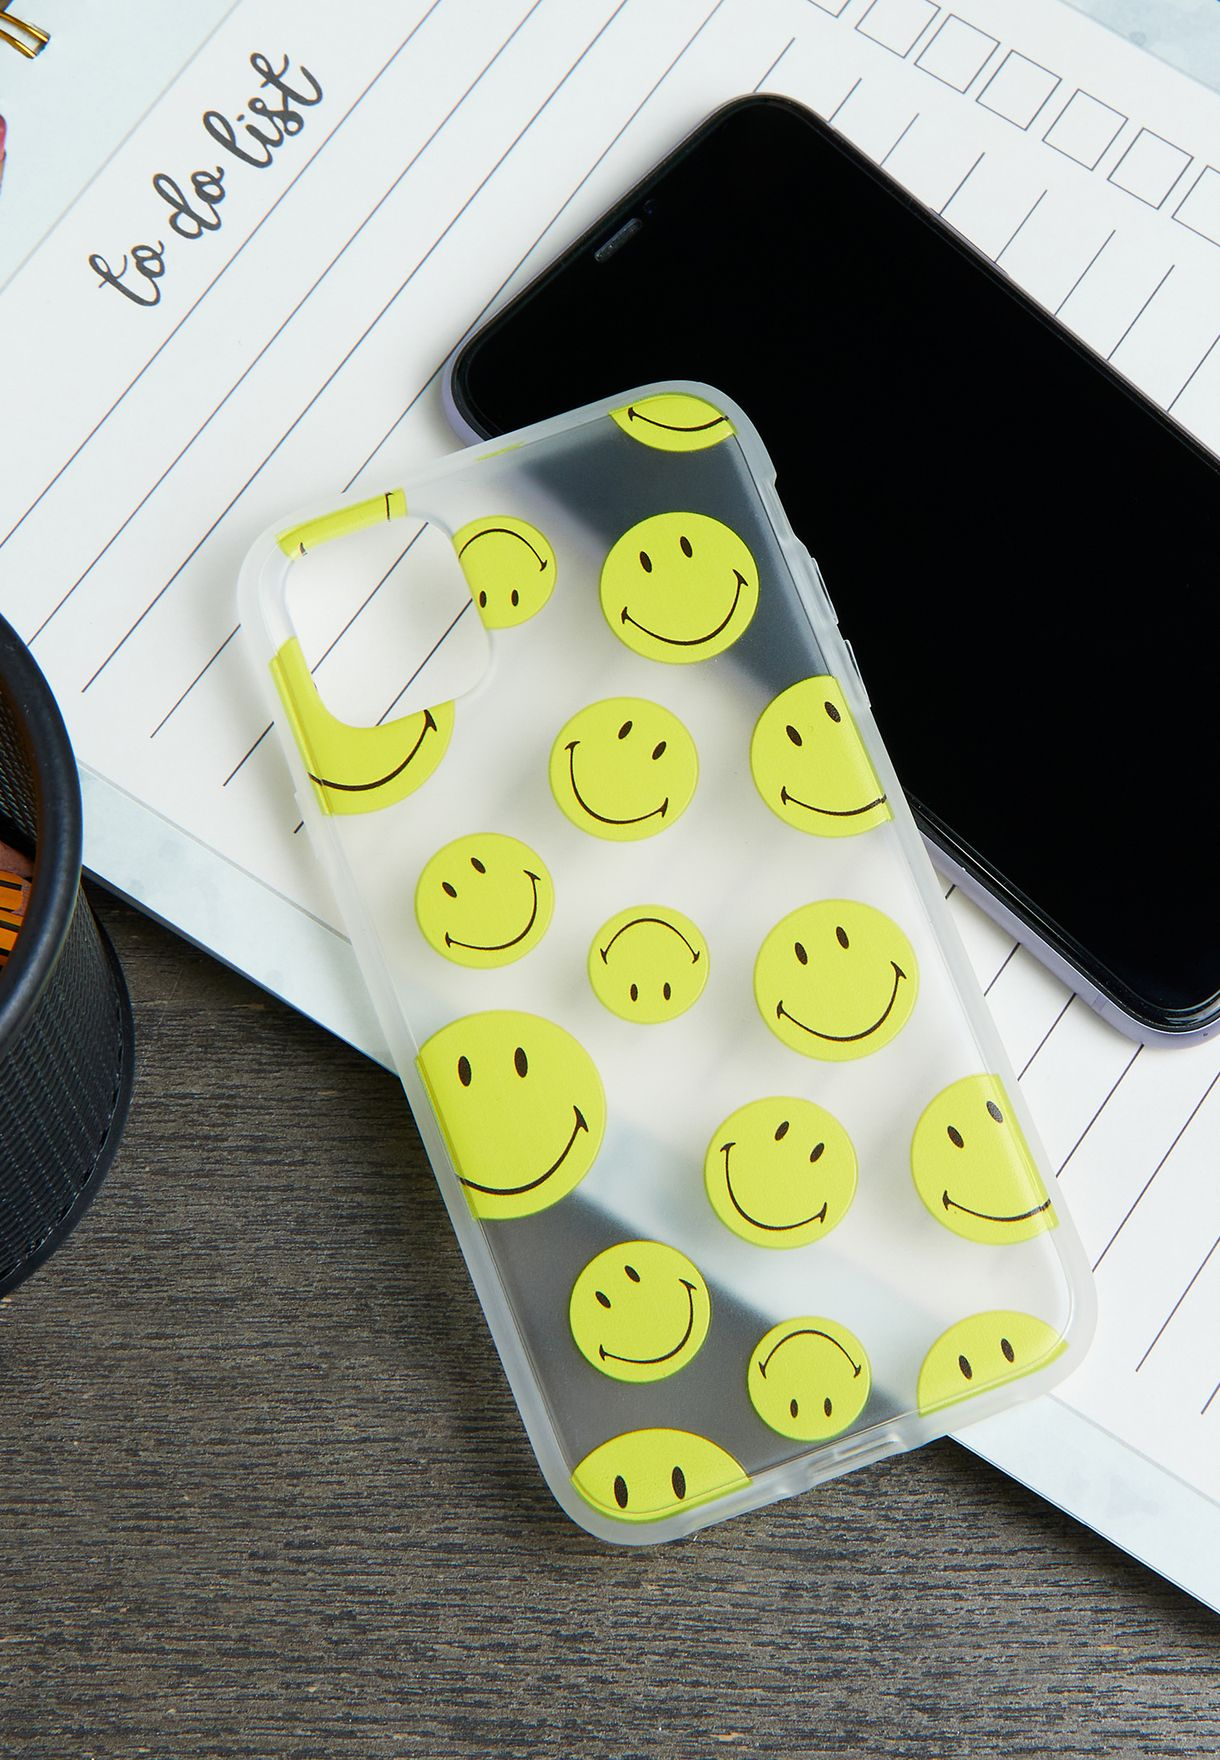 Smiley Face Snap On Protective iPhone 11 Case